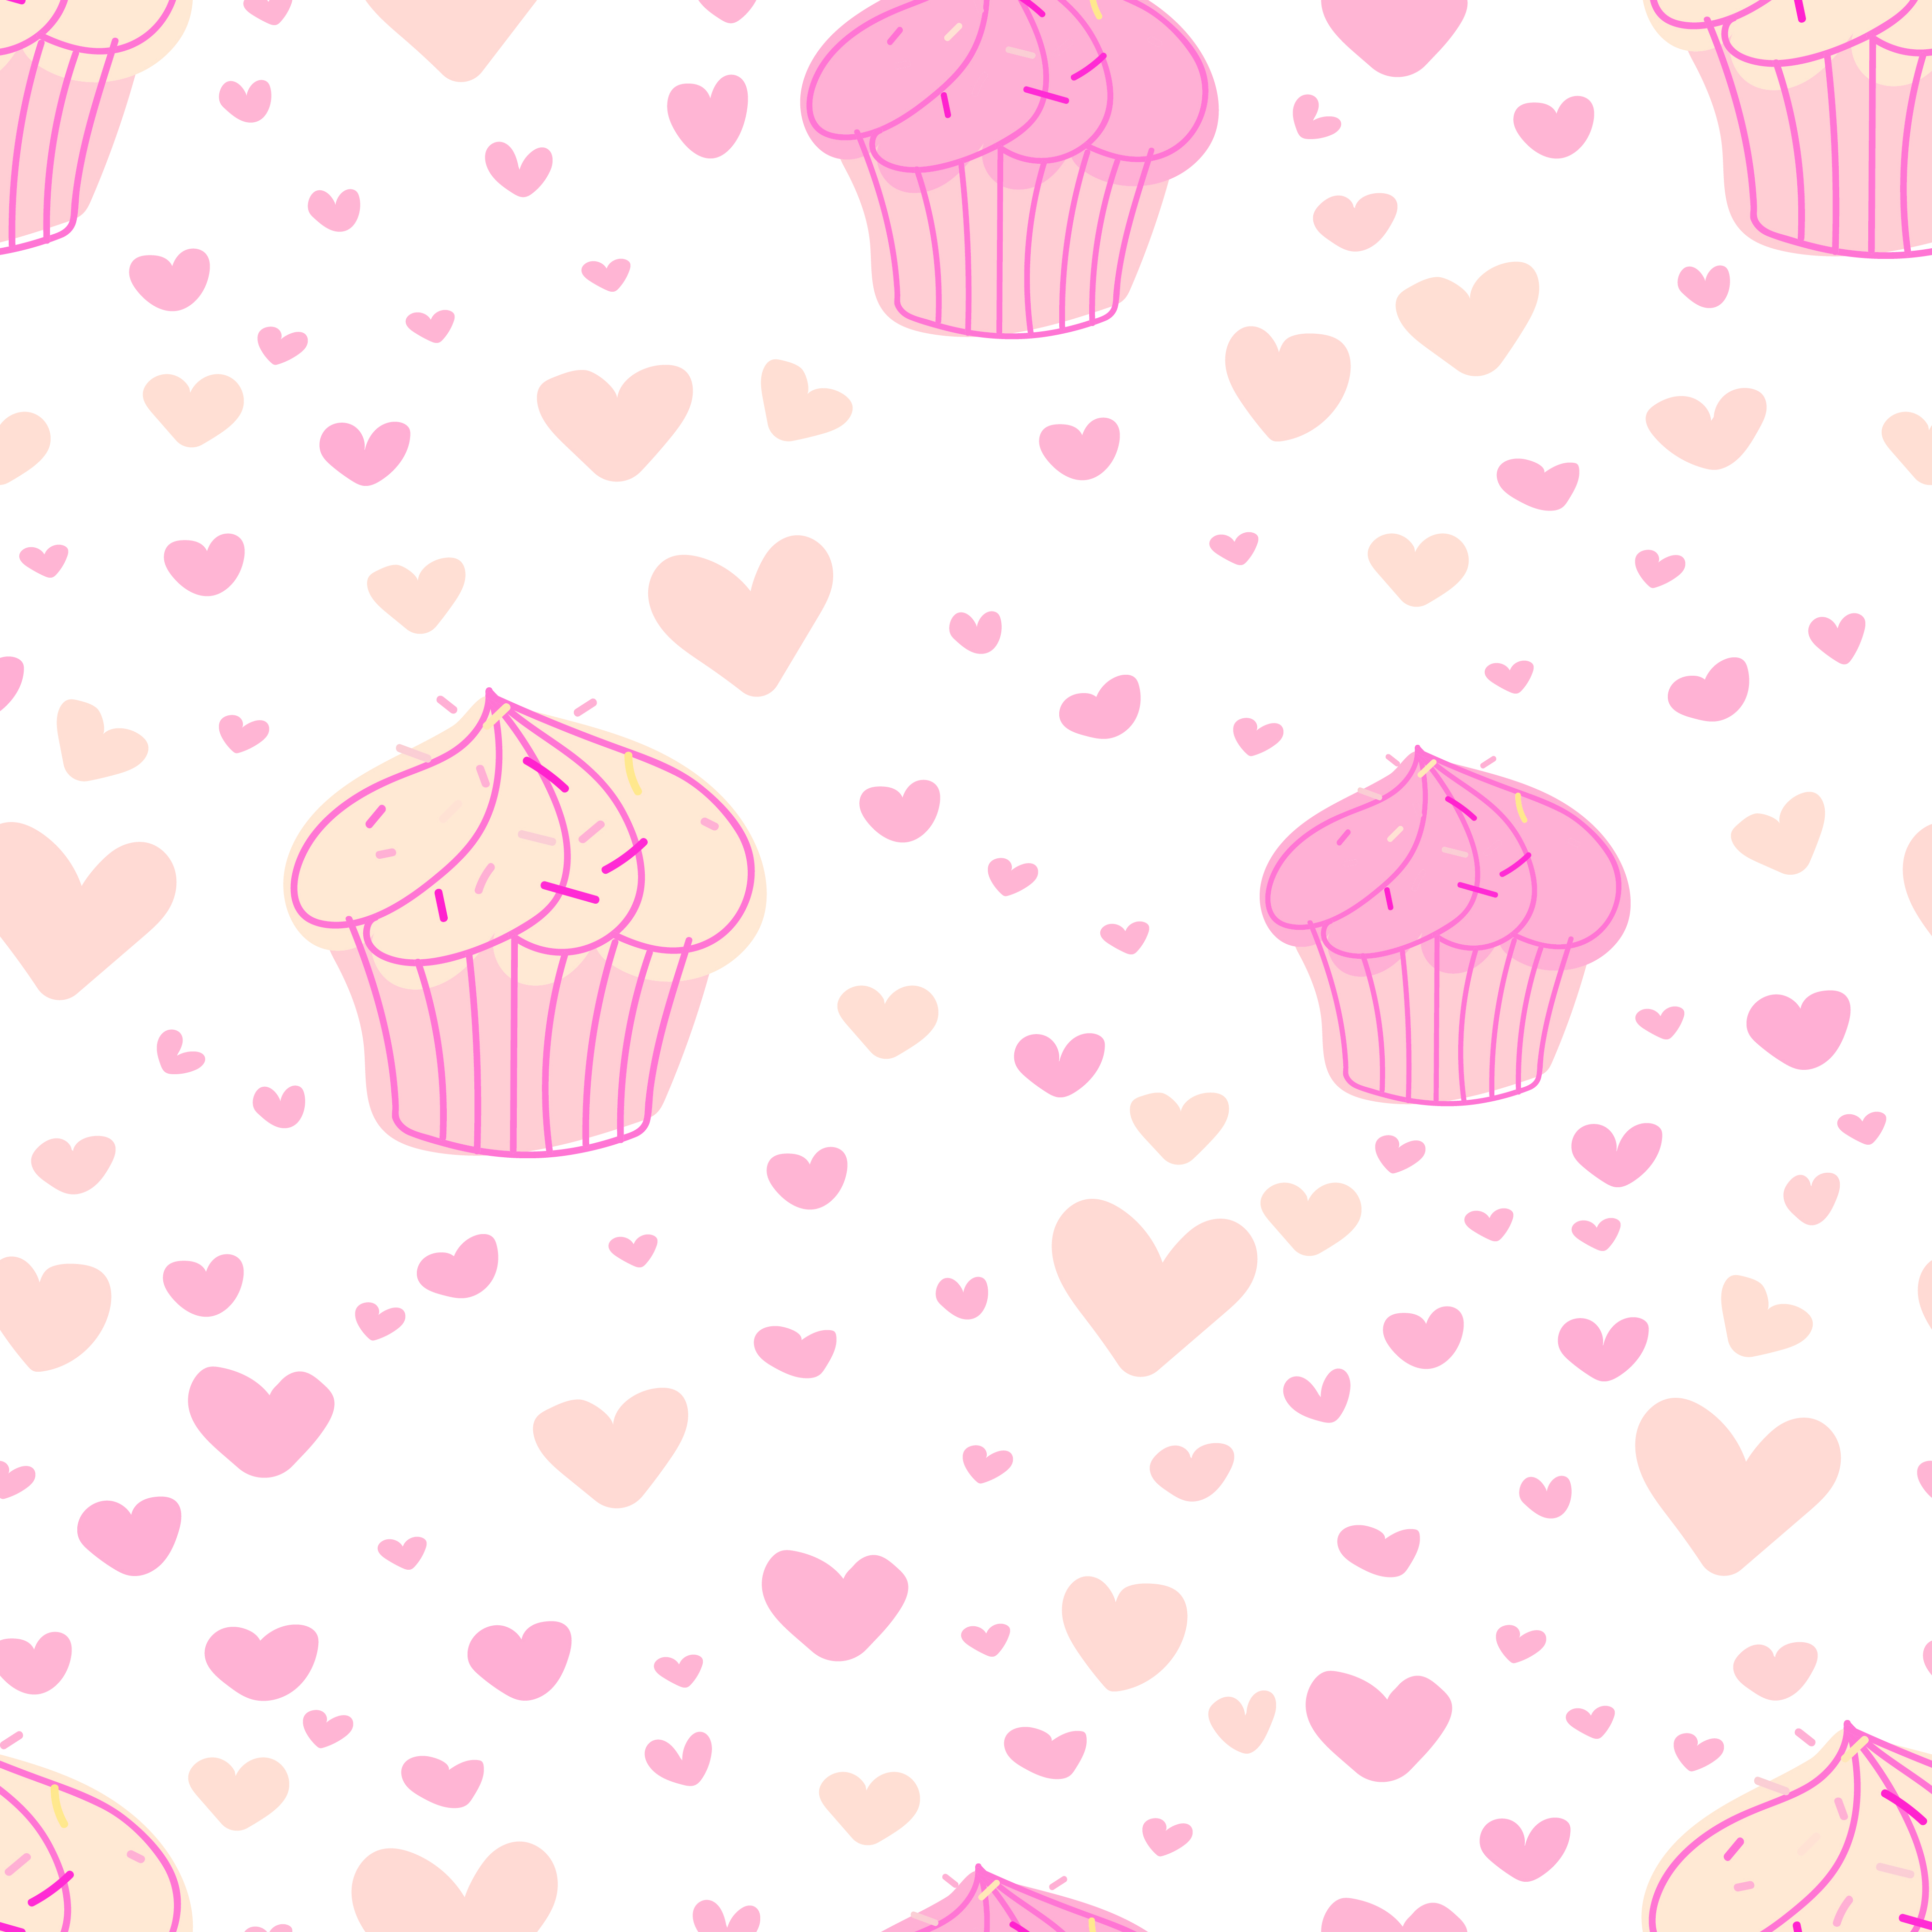 cupcakes pattern background cute bakery pattern vector illustration download free vectors clipart graphics vector art vecteezy